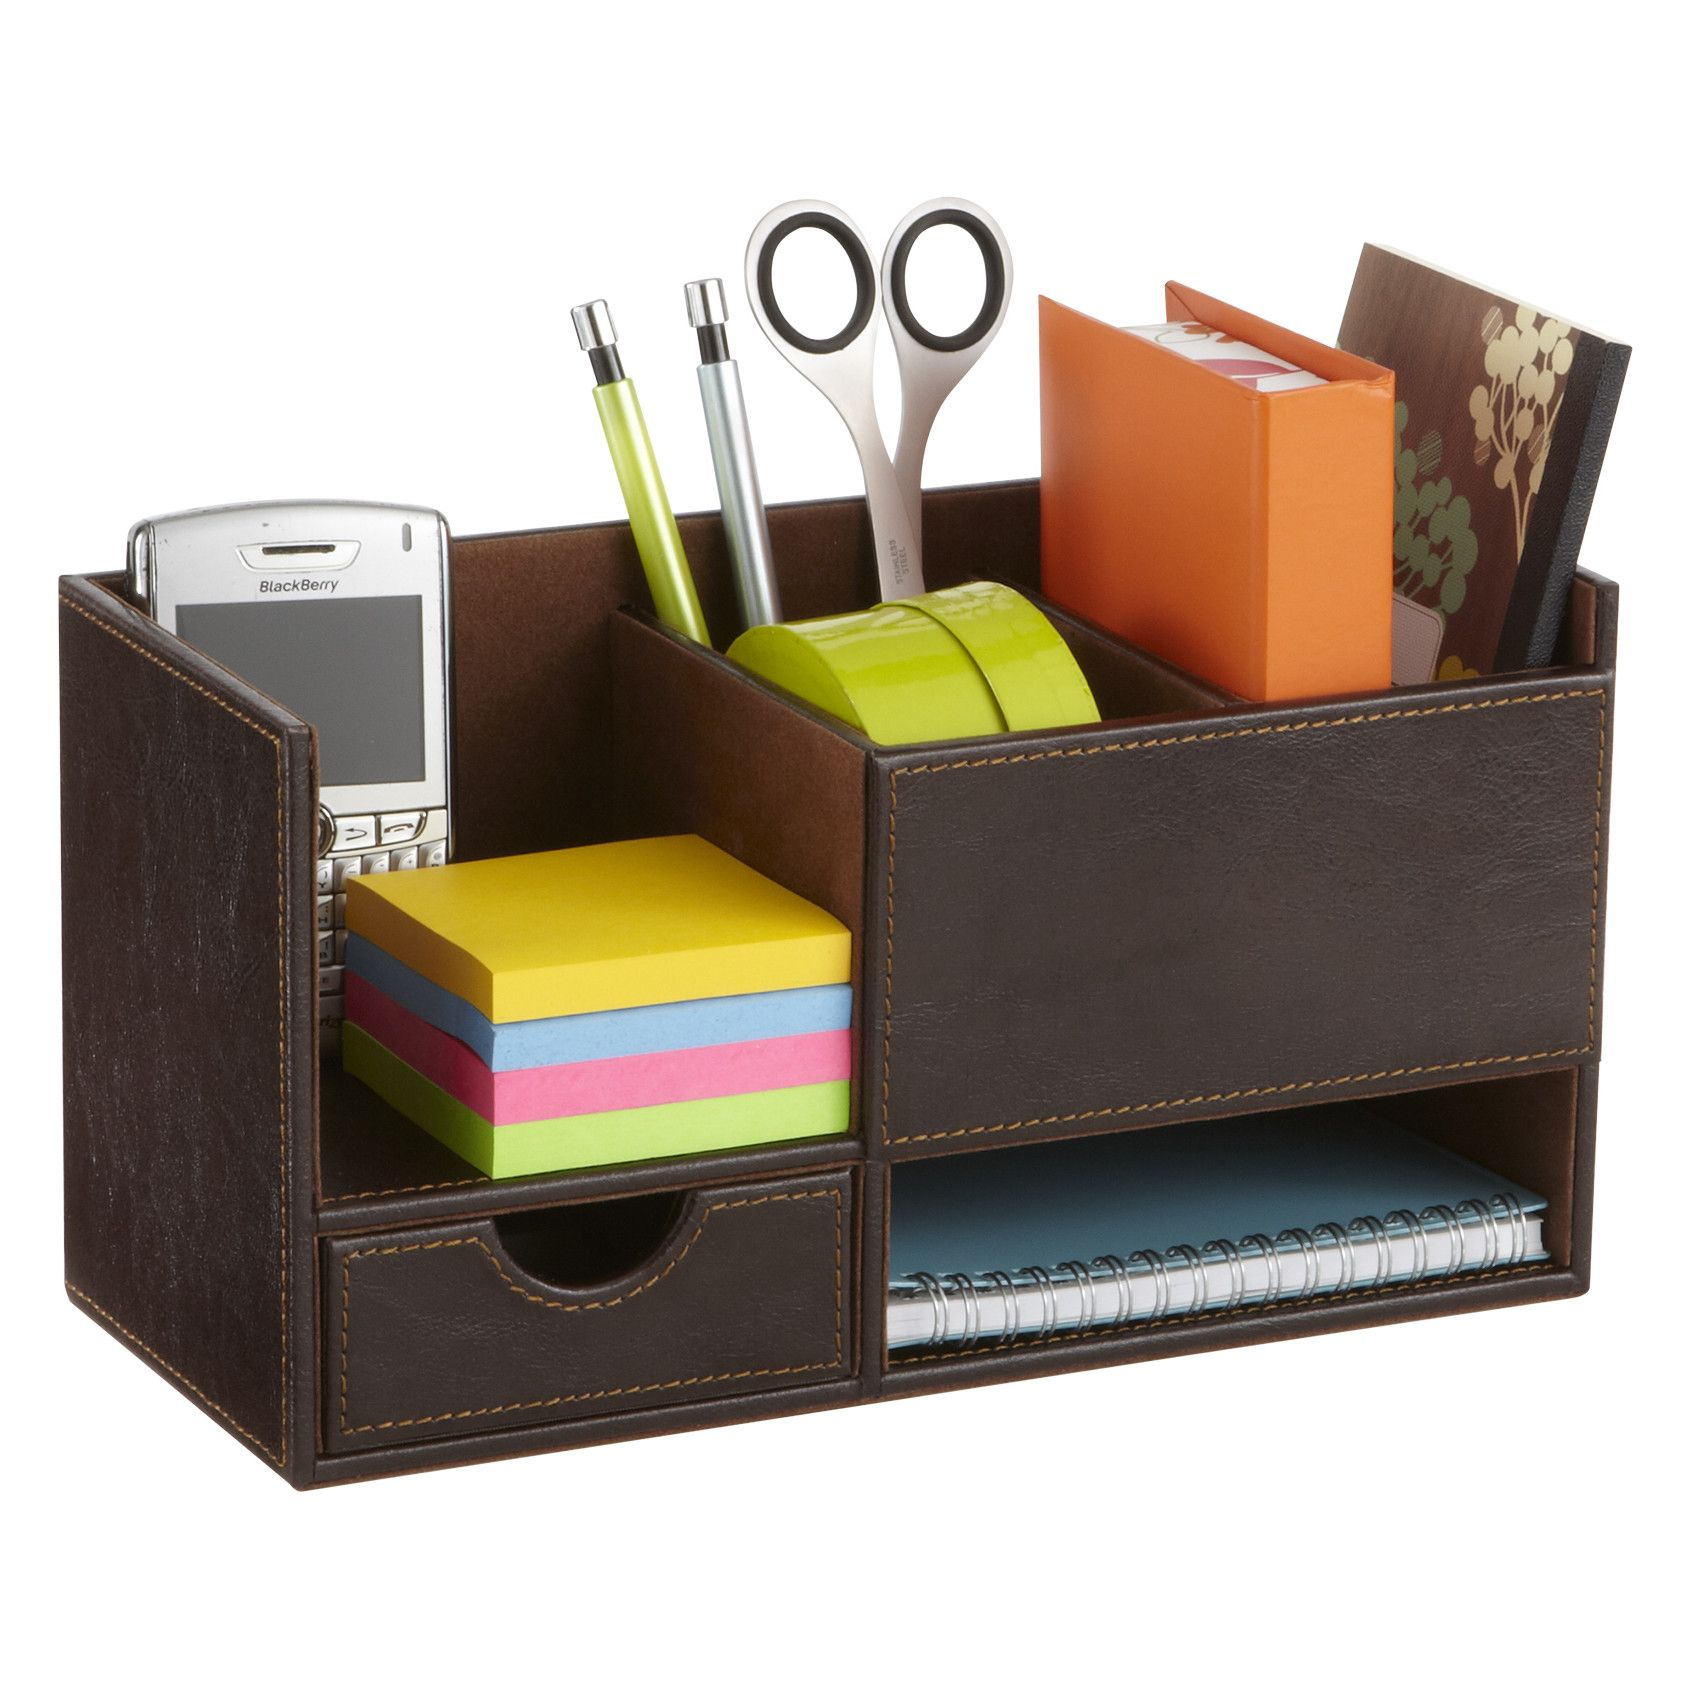 Desk Organiser Stationery Fascinating Desk Organizers For Home Furniture Ideas Desk